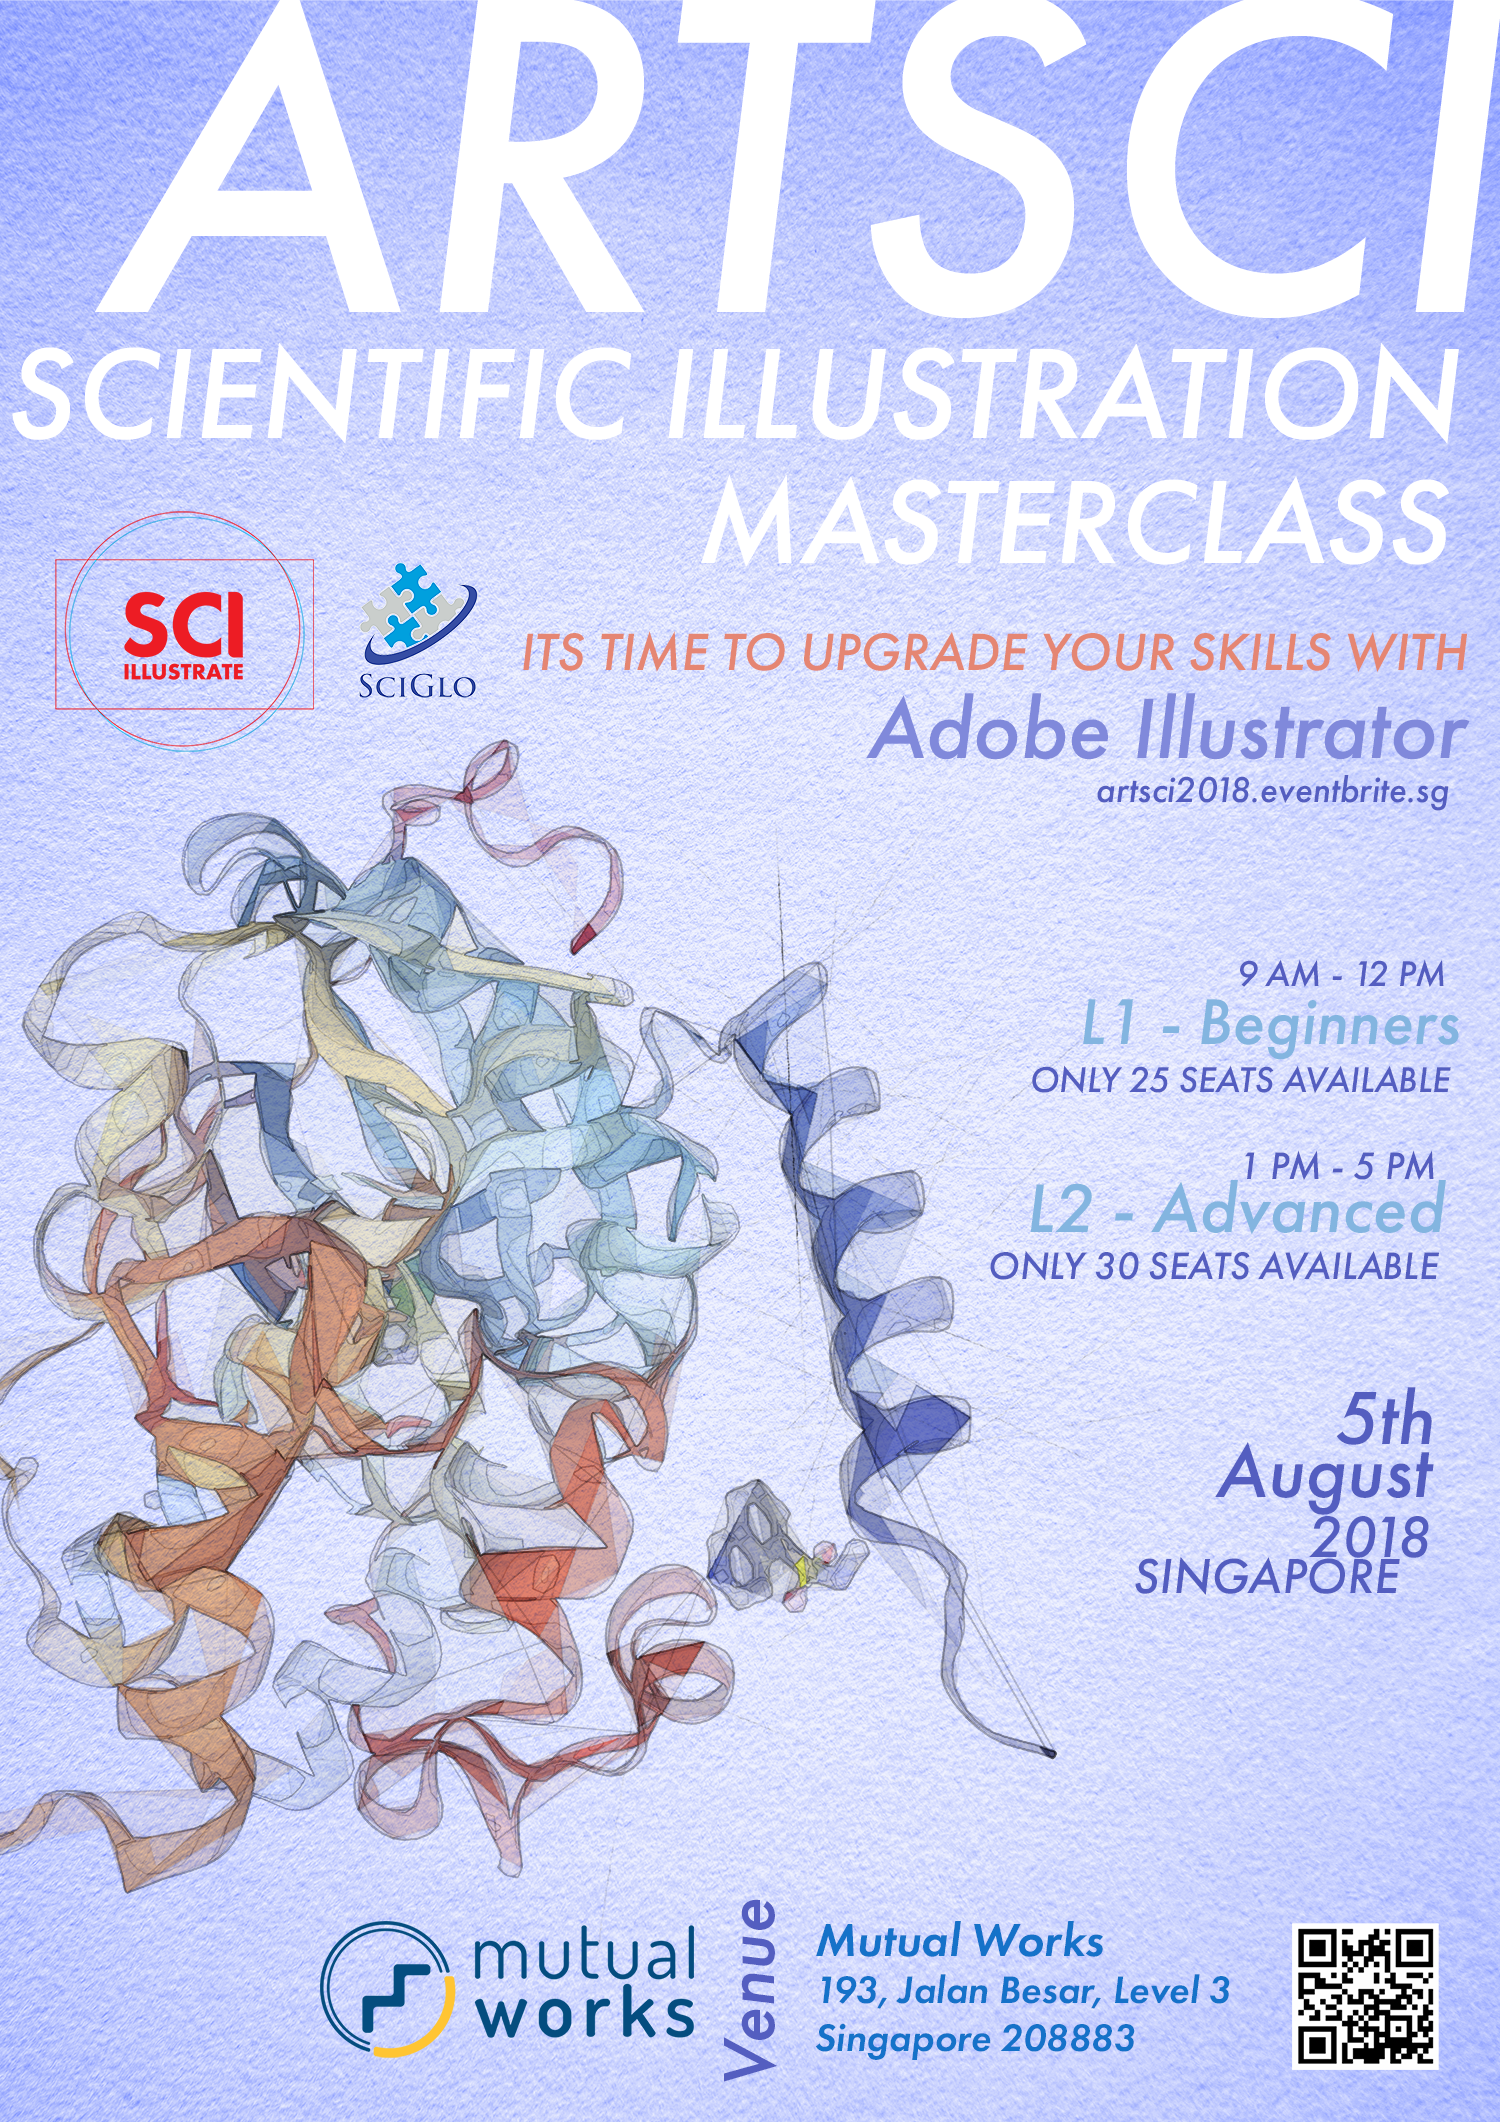 Want to learn how top journals make their beautiful scientific illustrations? - After the overwhelmingly positive response to ARTSCI 2017, Sci-Illustrate and SciGlo bring to you once more, ARTSCI 2018.Our aim with this workshop is to transfer knowledge, invest in your skill development and teach you how to use key professional tools to level up your scientific illustration and visual communication game.